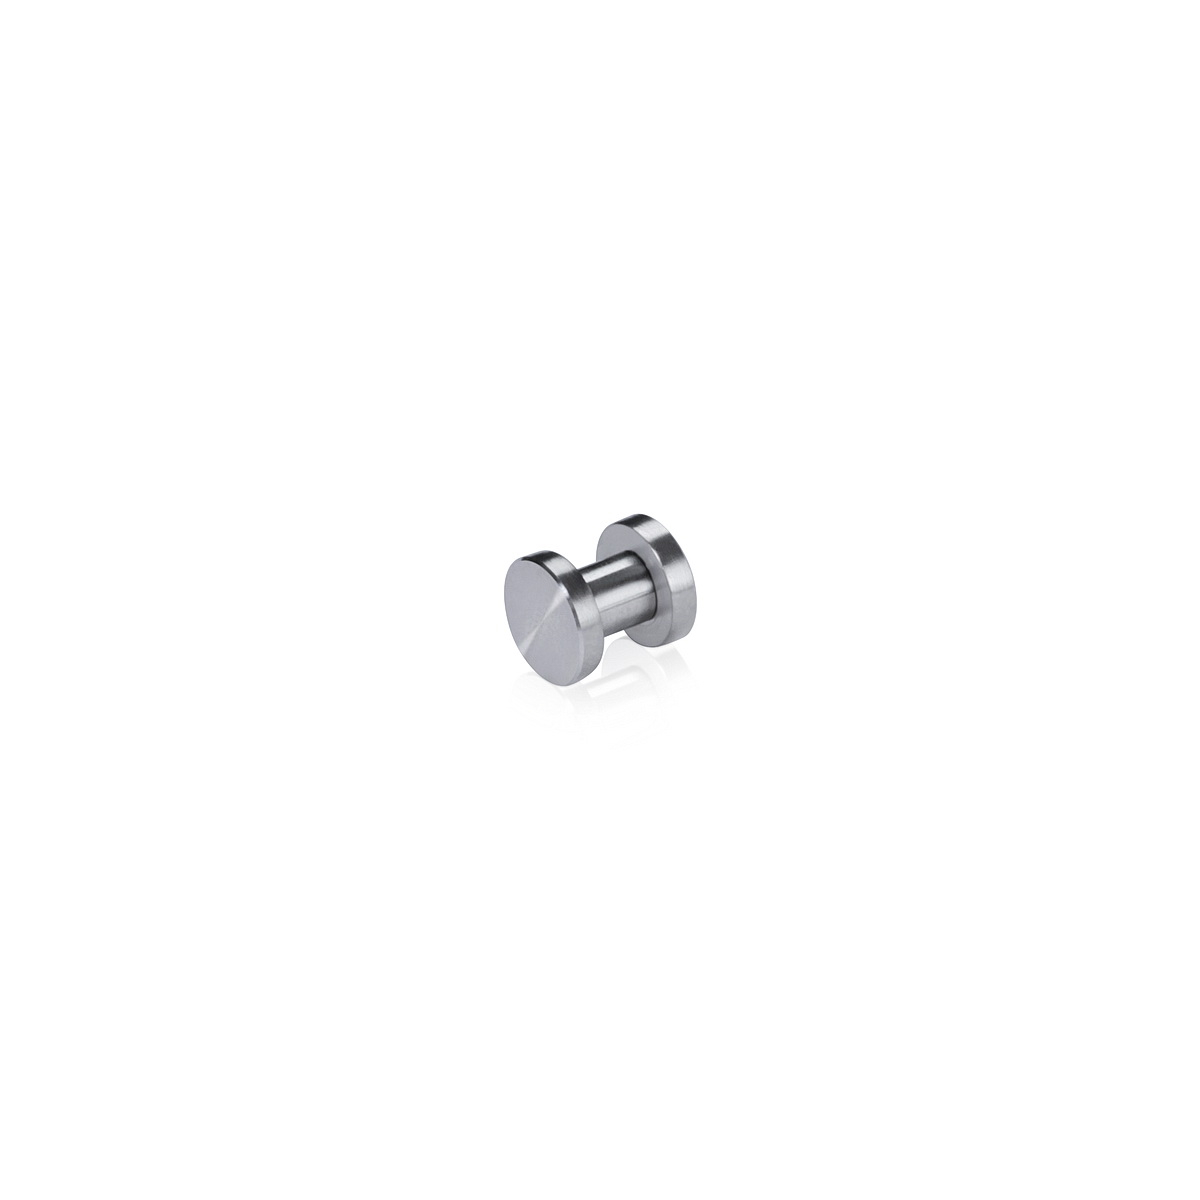 Flat Head Material Connector Stainless Steel Satin Brushed Finish